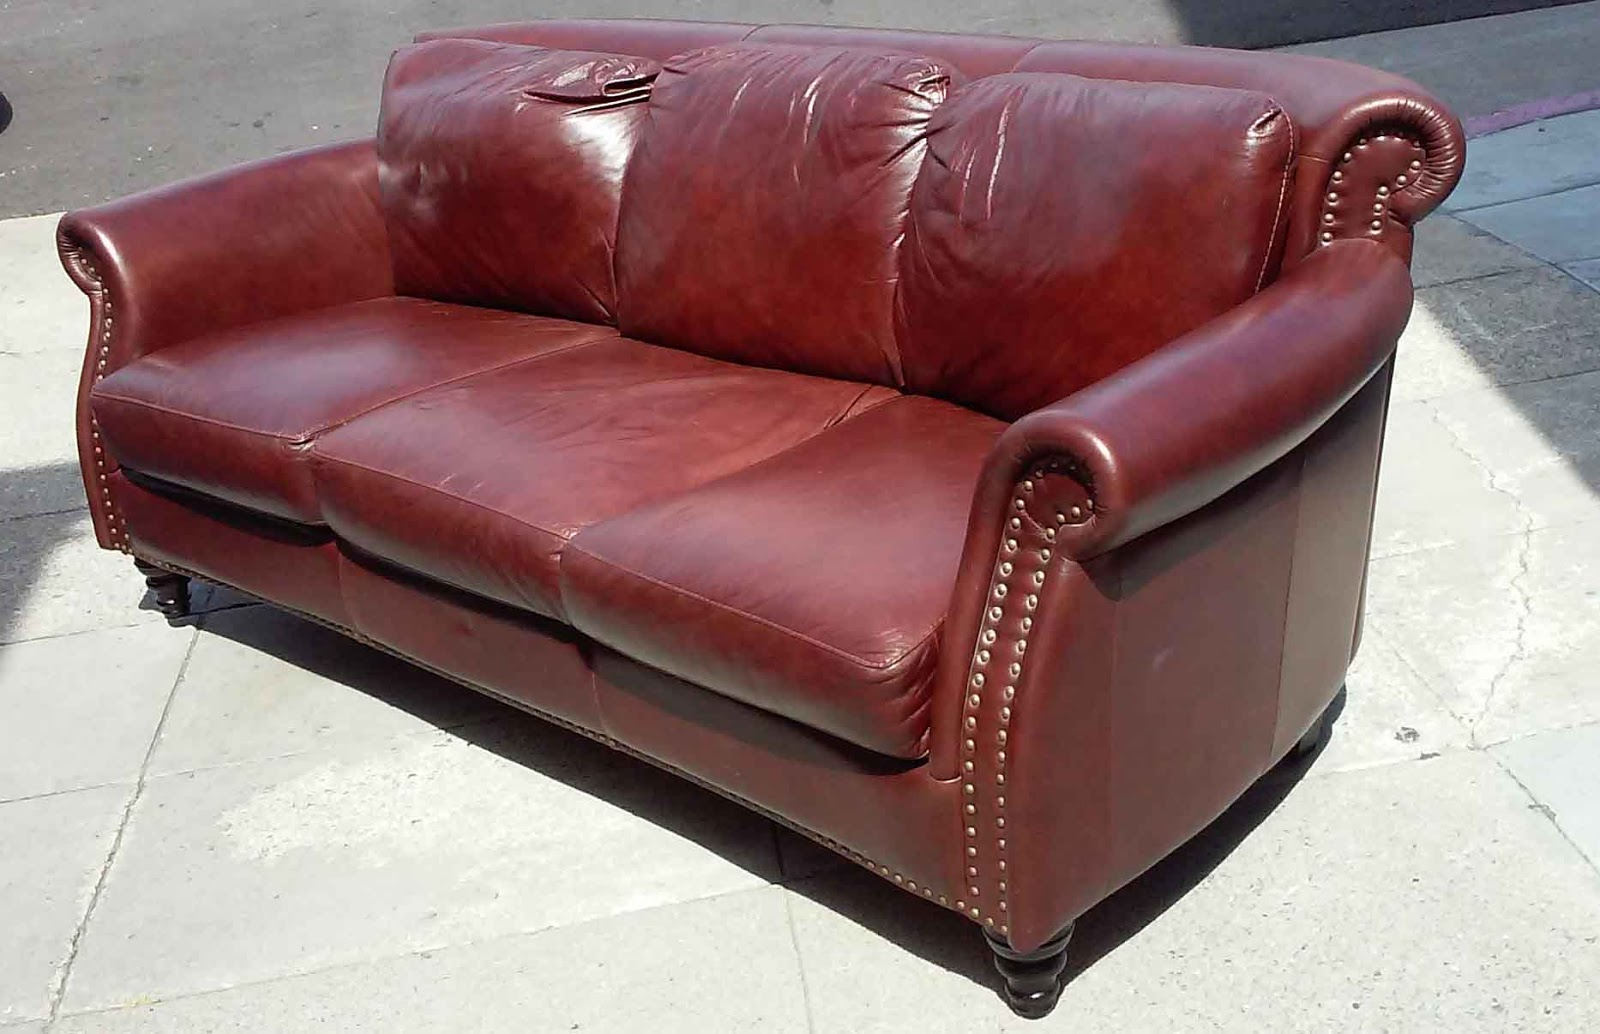 Uhuru furniture collectibles sold antique style burgundy leather sofa 180 Burgundy leather loveseat